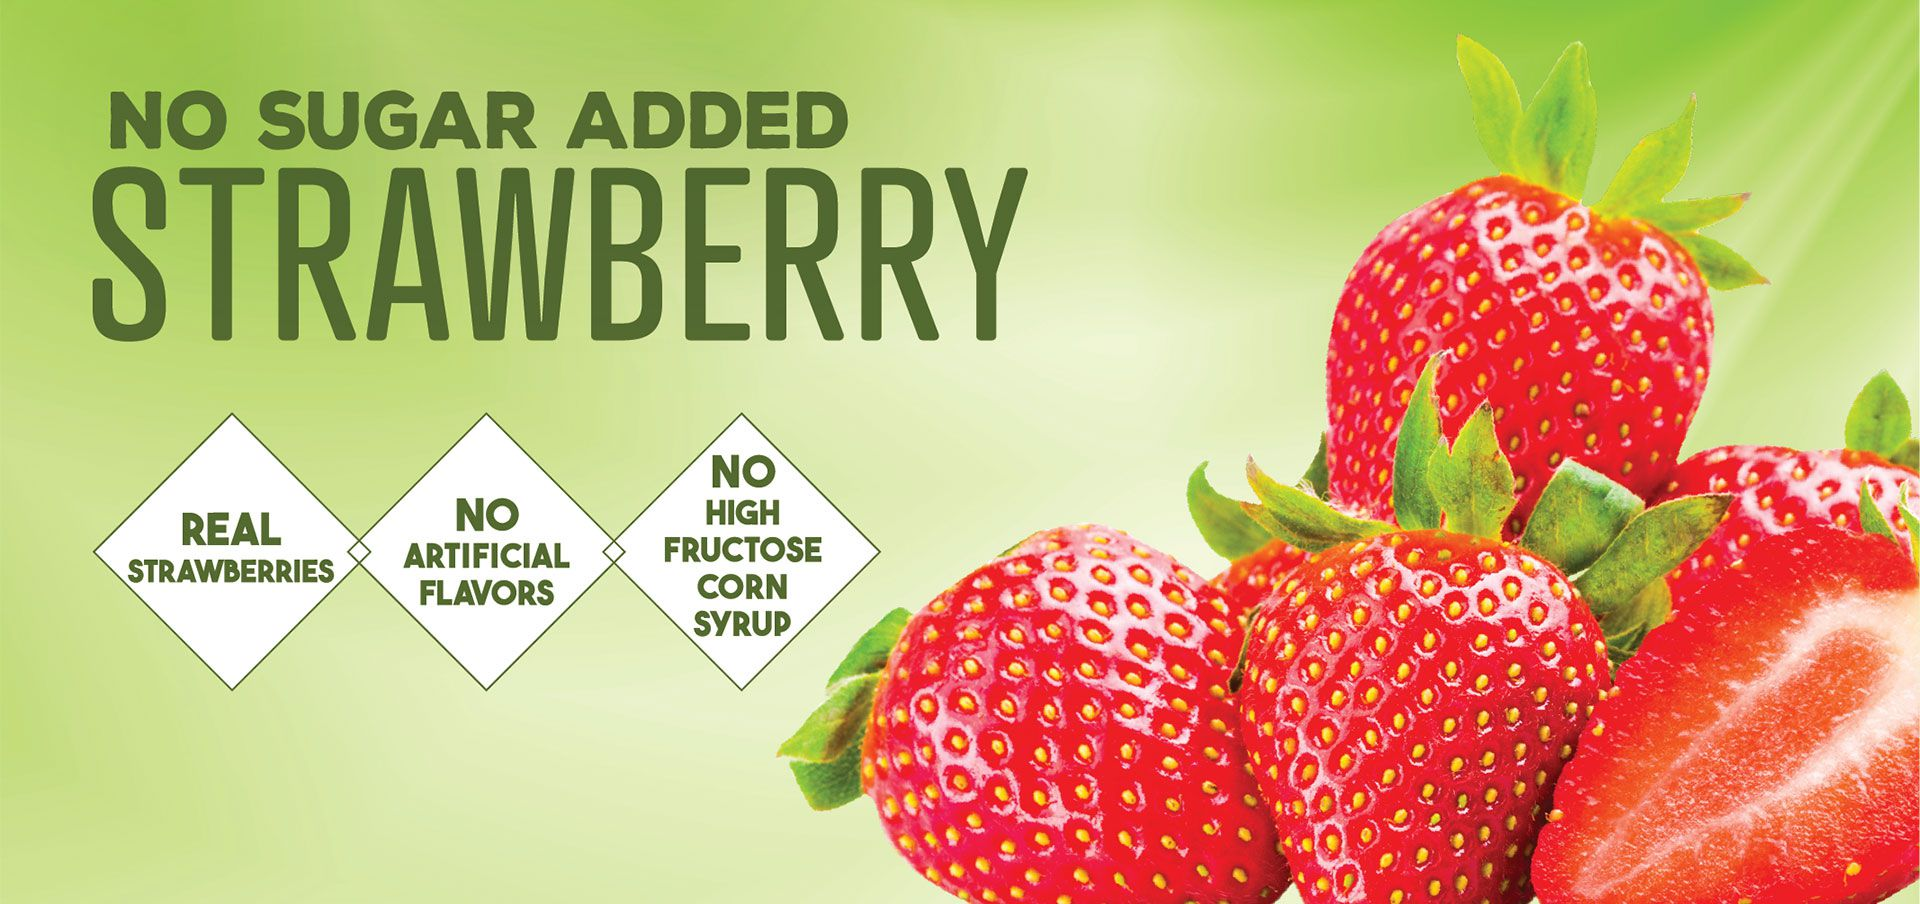 nsa strawberry label image